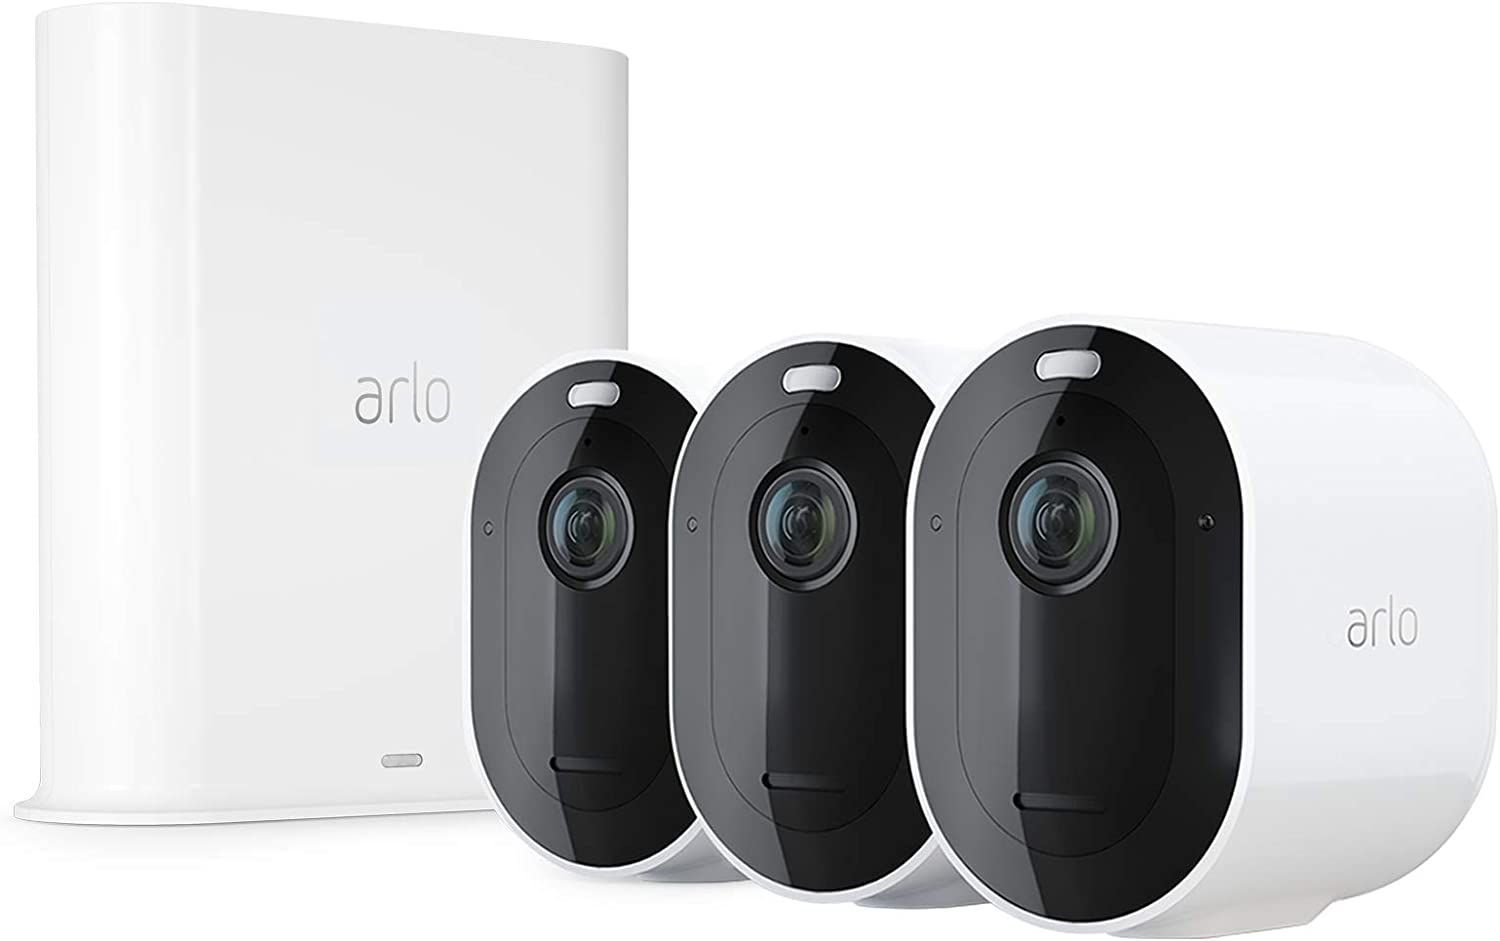 Arlo Pro 3 - Home Security 3 Camera System, Wire-Free 2K Video with HDR, Color Night Vision, Spotlight, 160° View, 2-Way Audio, Siren, Works with Alexa (Renewed)